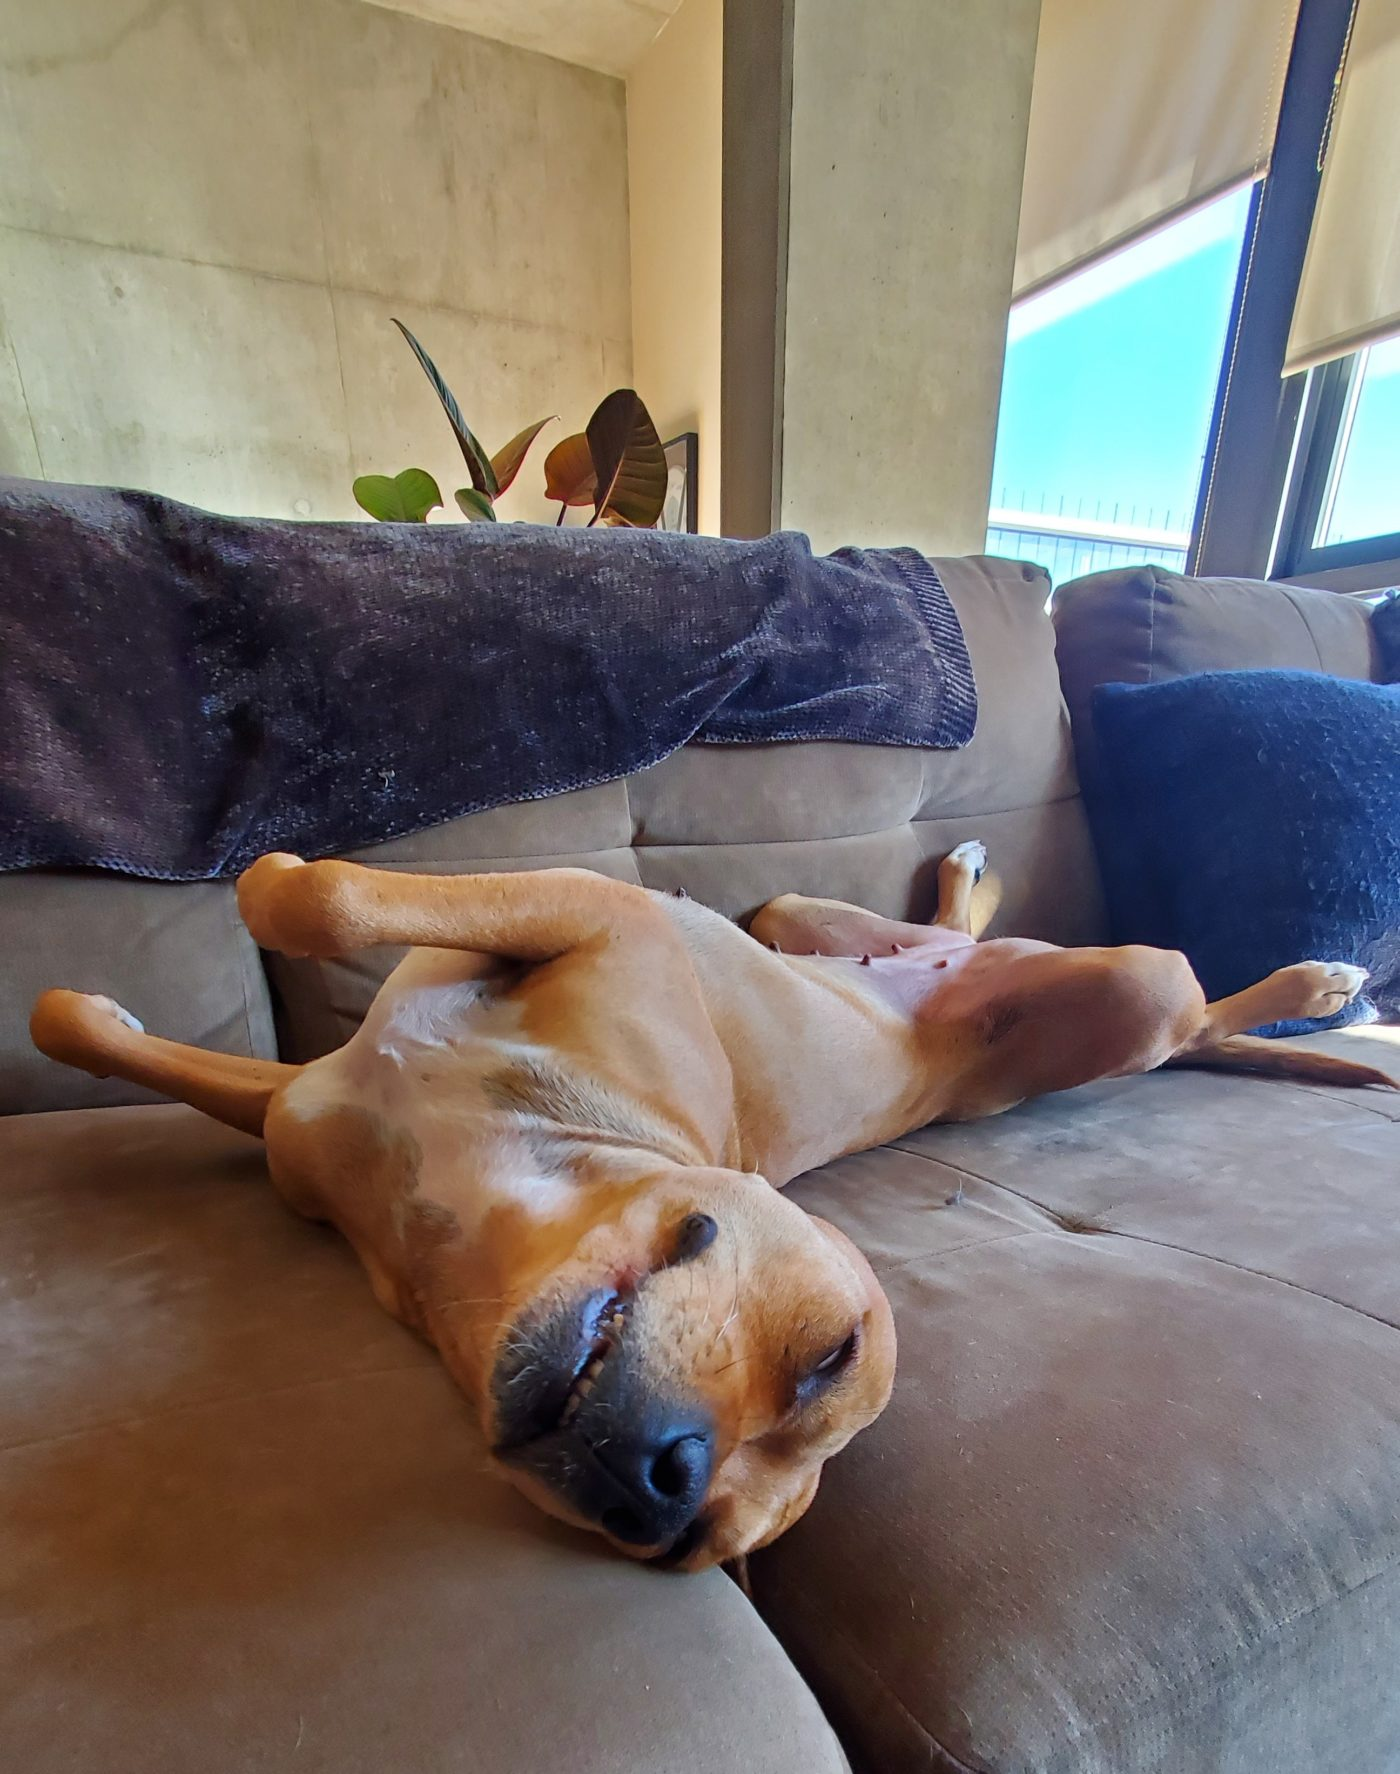 #thestruggleisreal, #nodogsonthecouch, #mexicanstreetdog, #rescuedfromthestreets